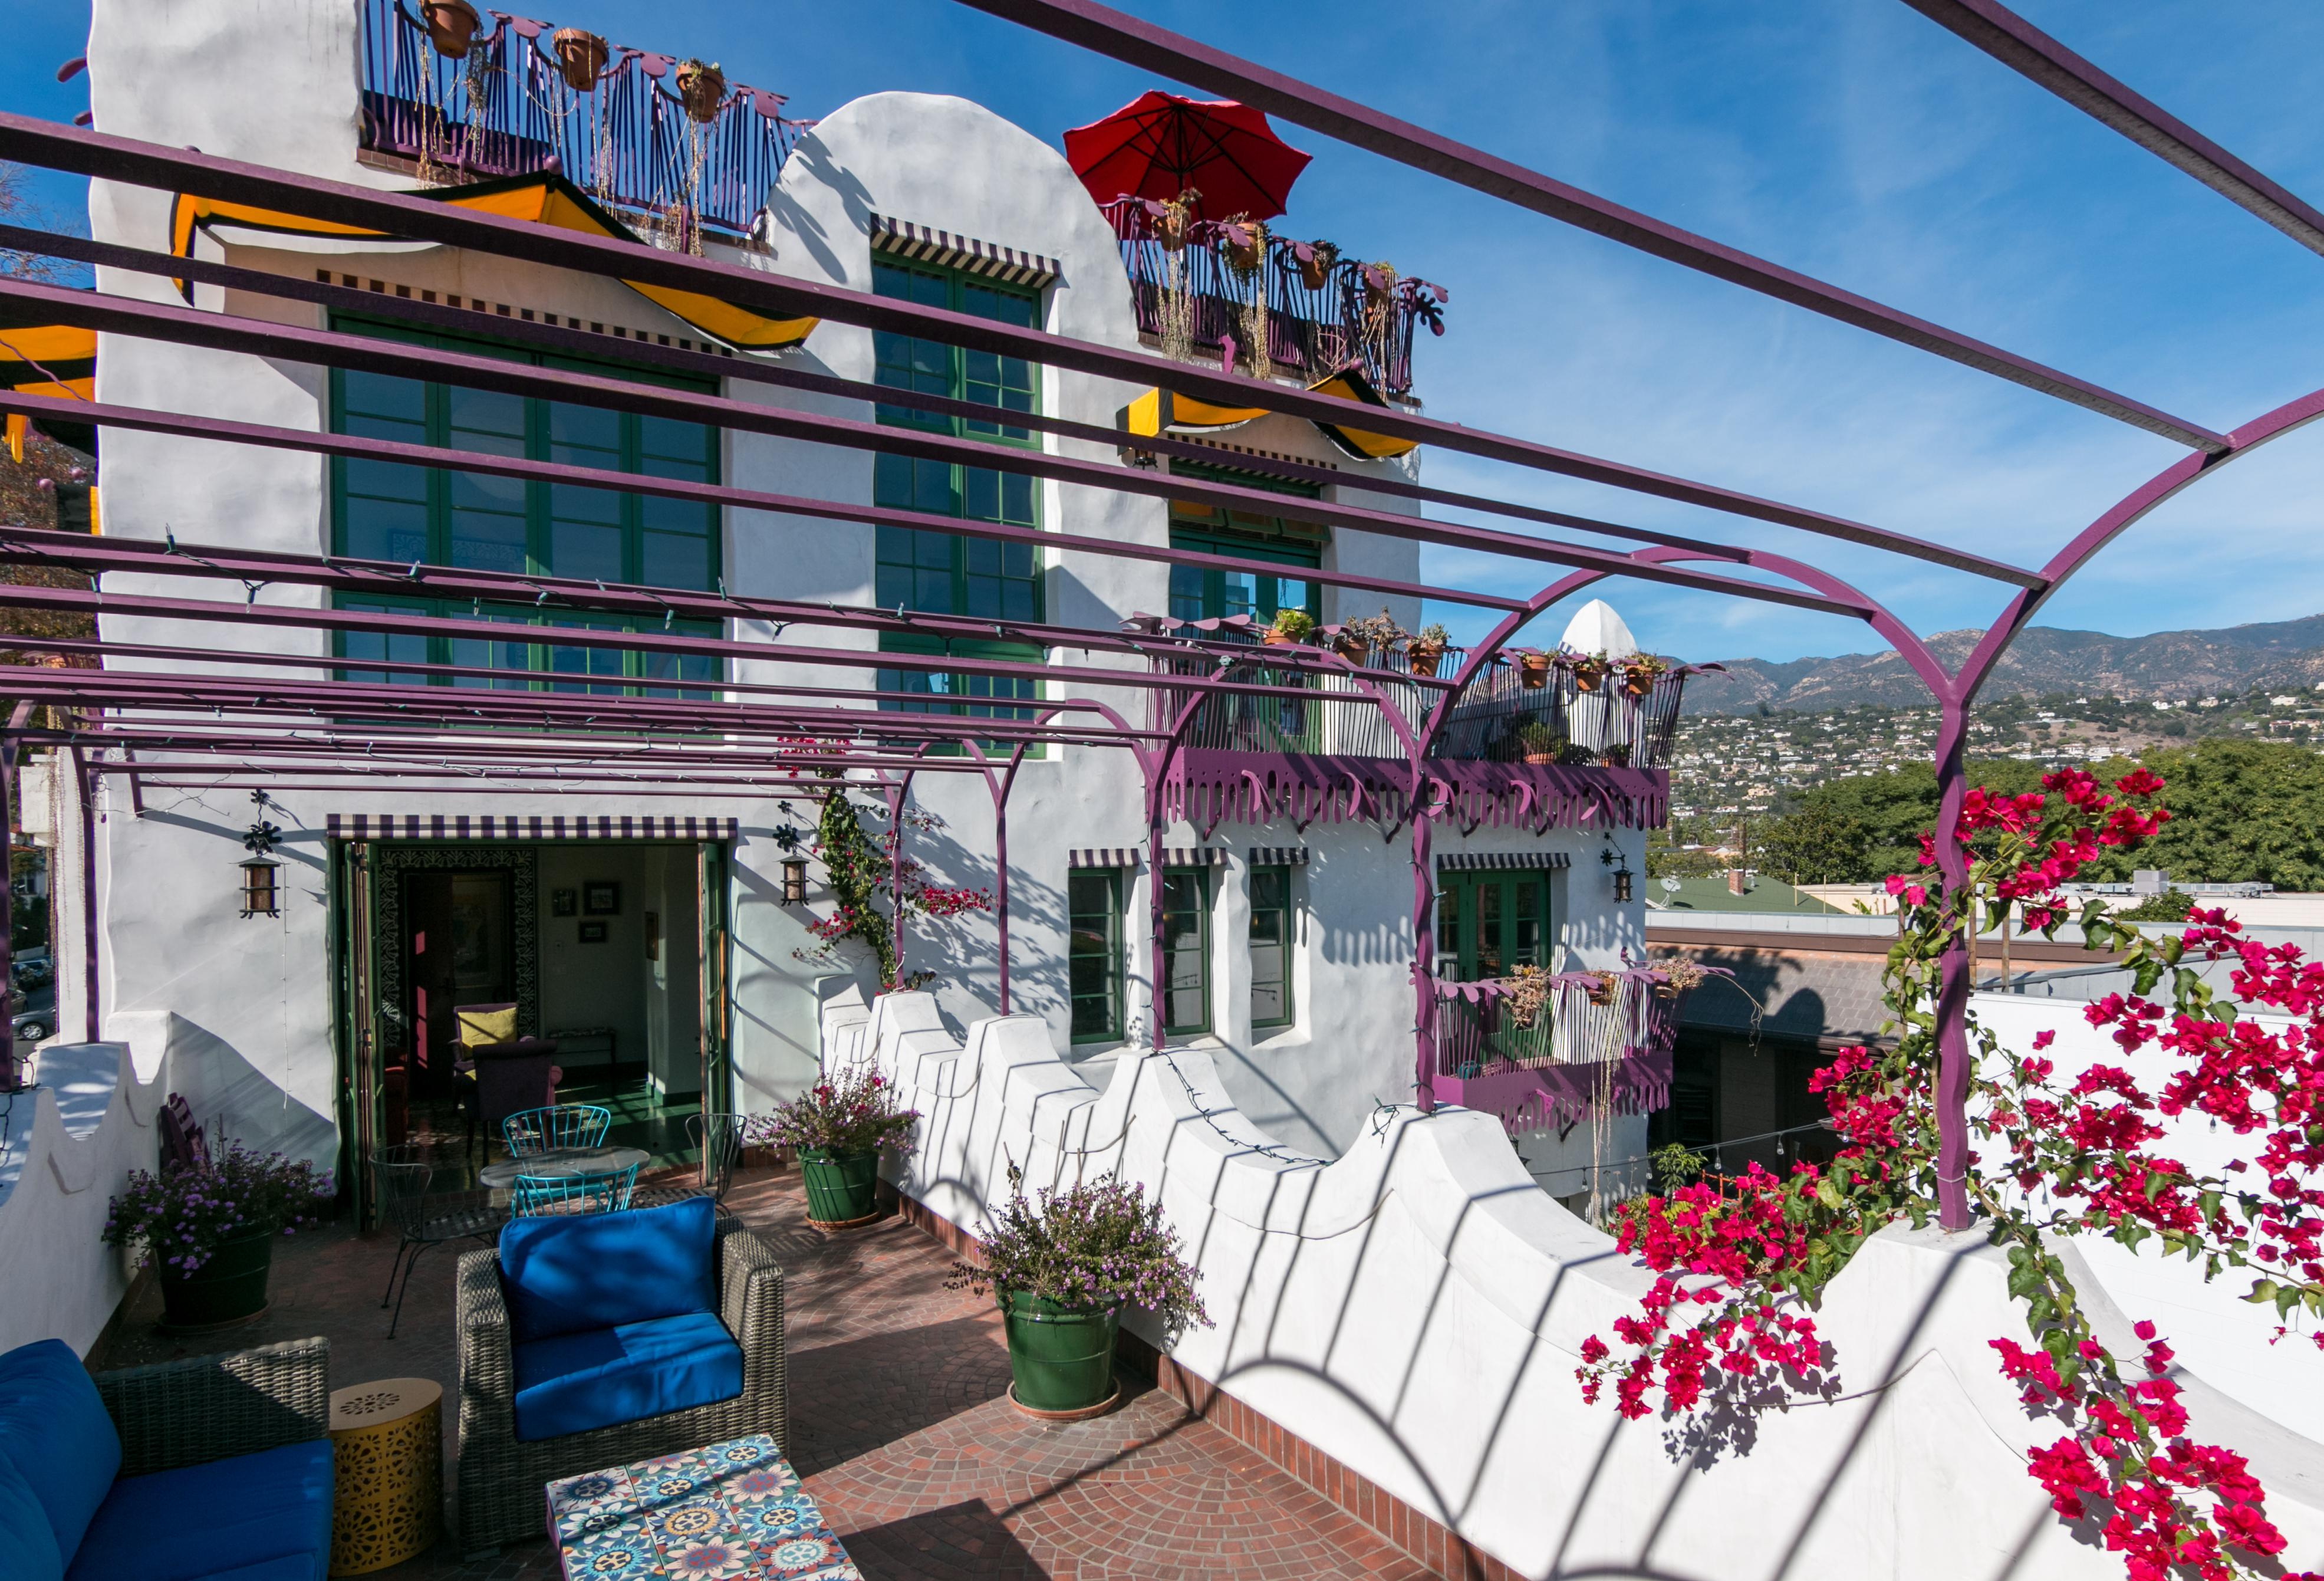 Welcome to Santa Barbara! The colorful private upstairs patio offers views of the city.